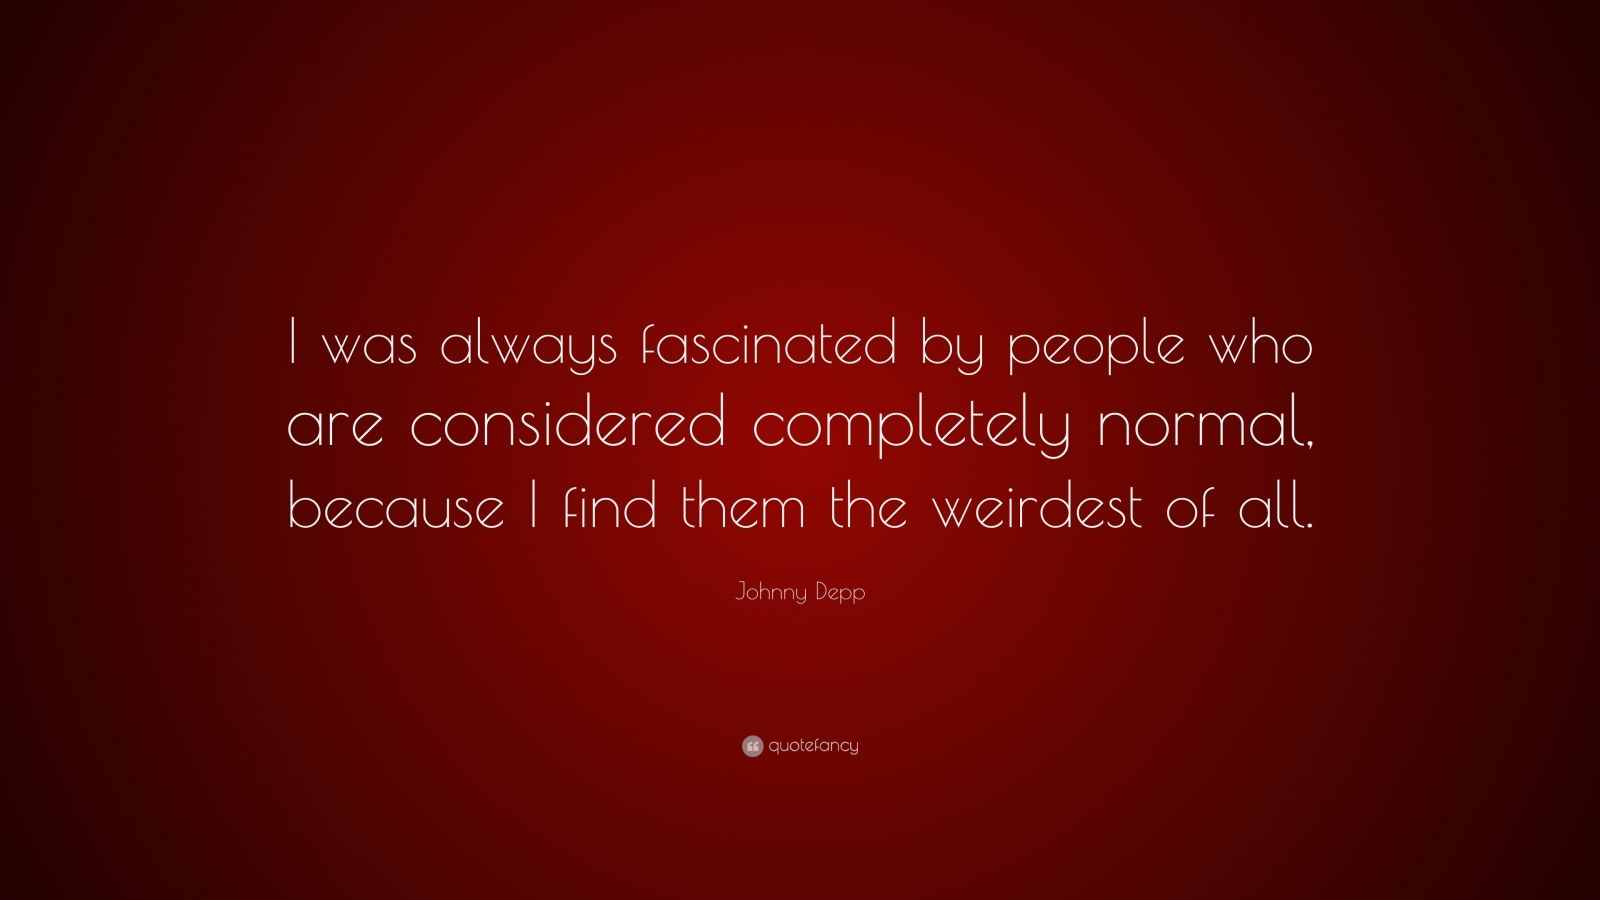 """Johnny Depp Quote: """"I was always fascinated by people who are considered completely normal, because I find them the weirdest of all."""""""